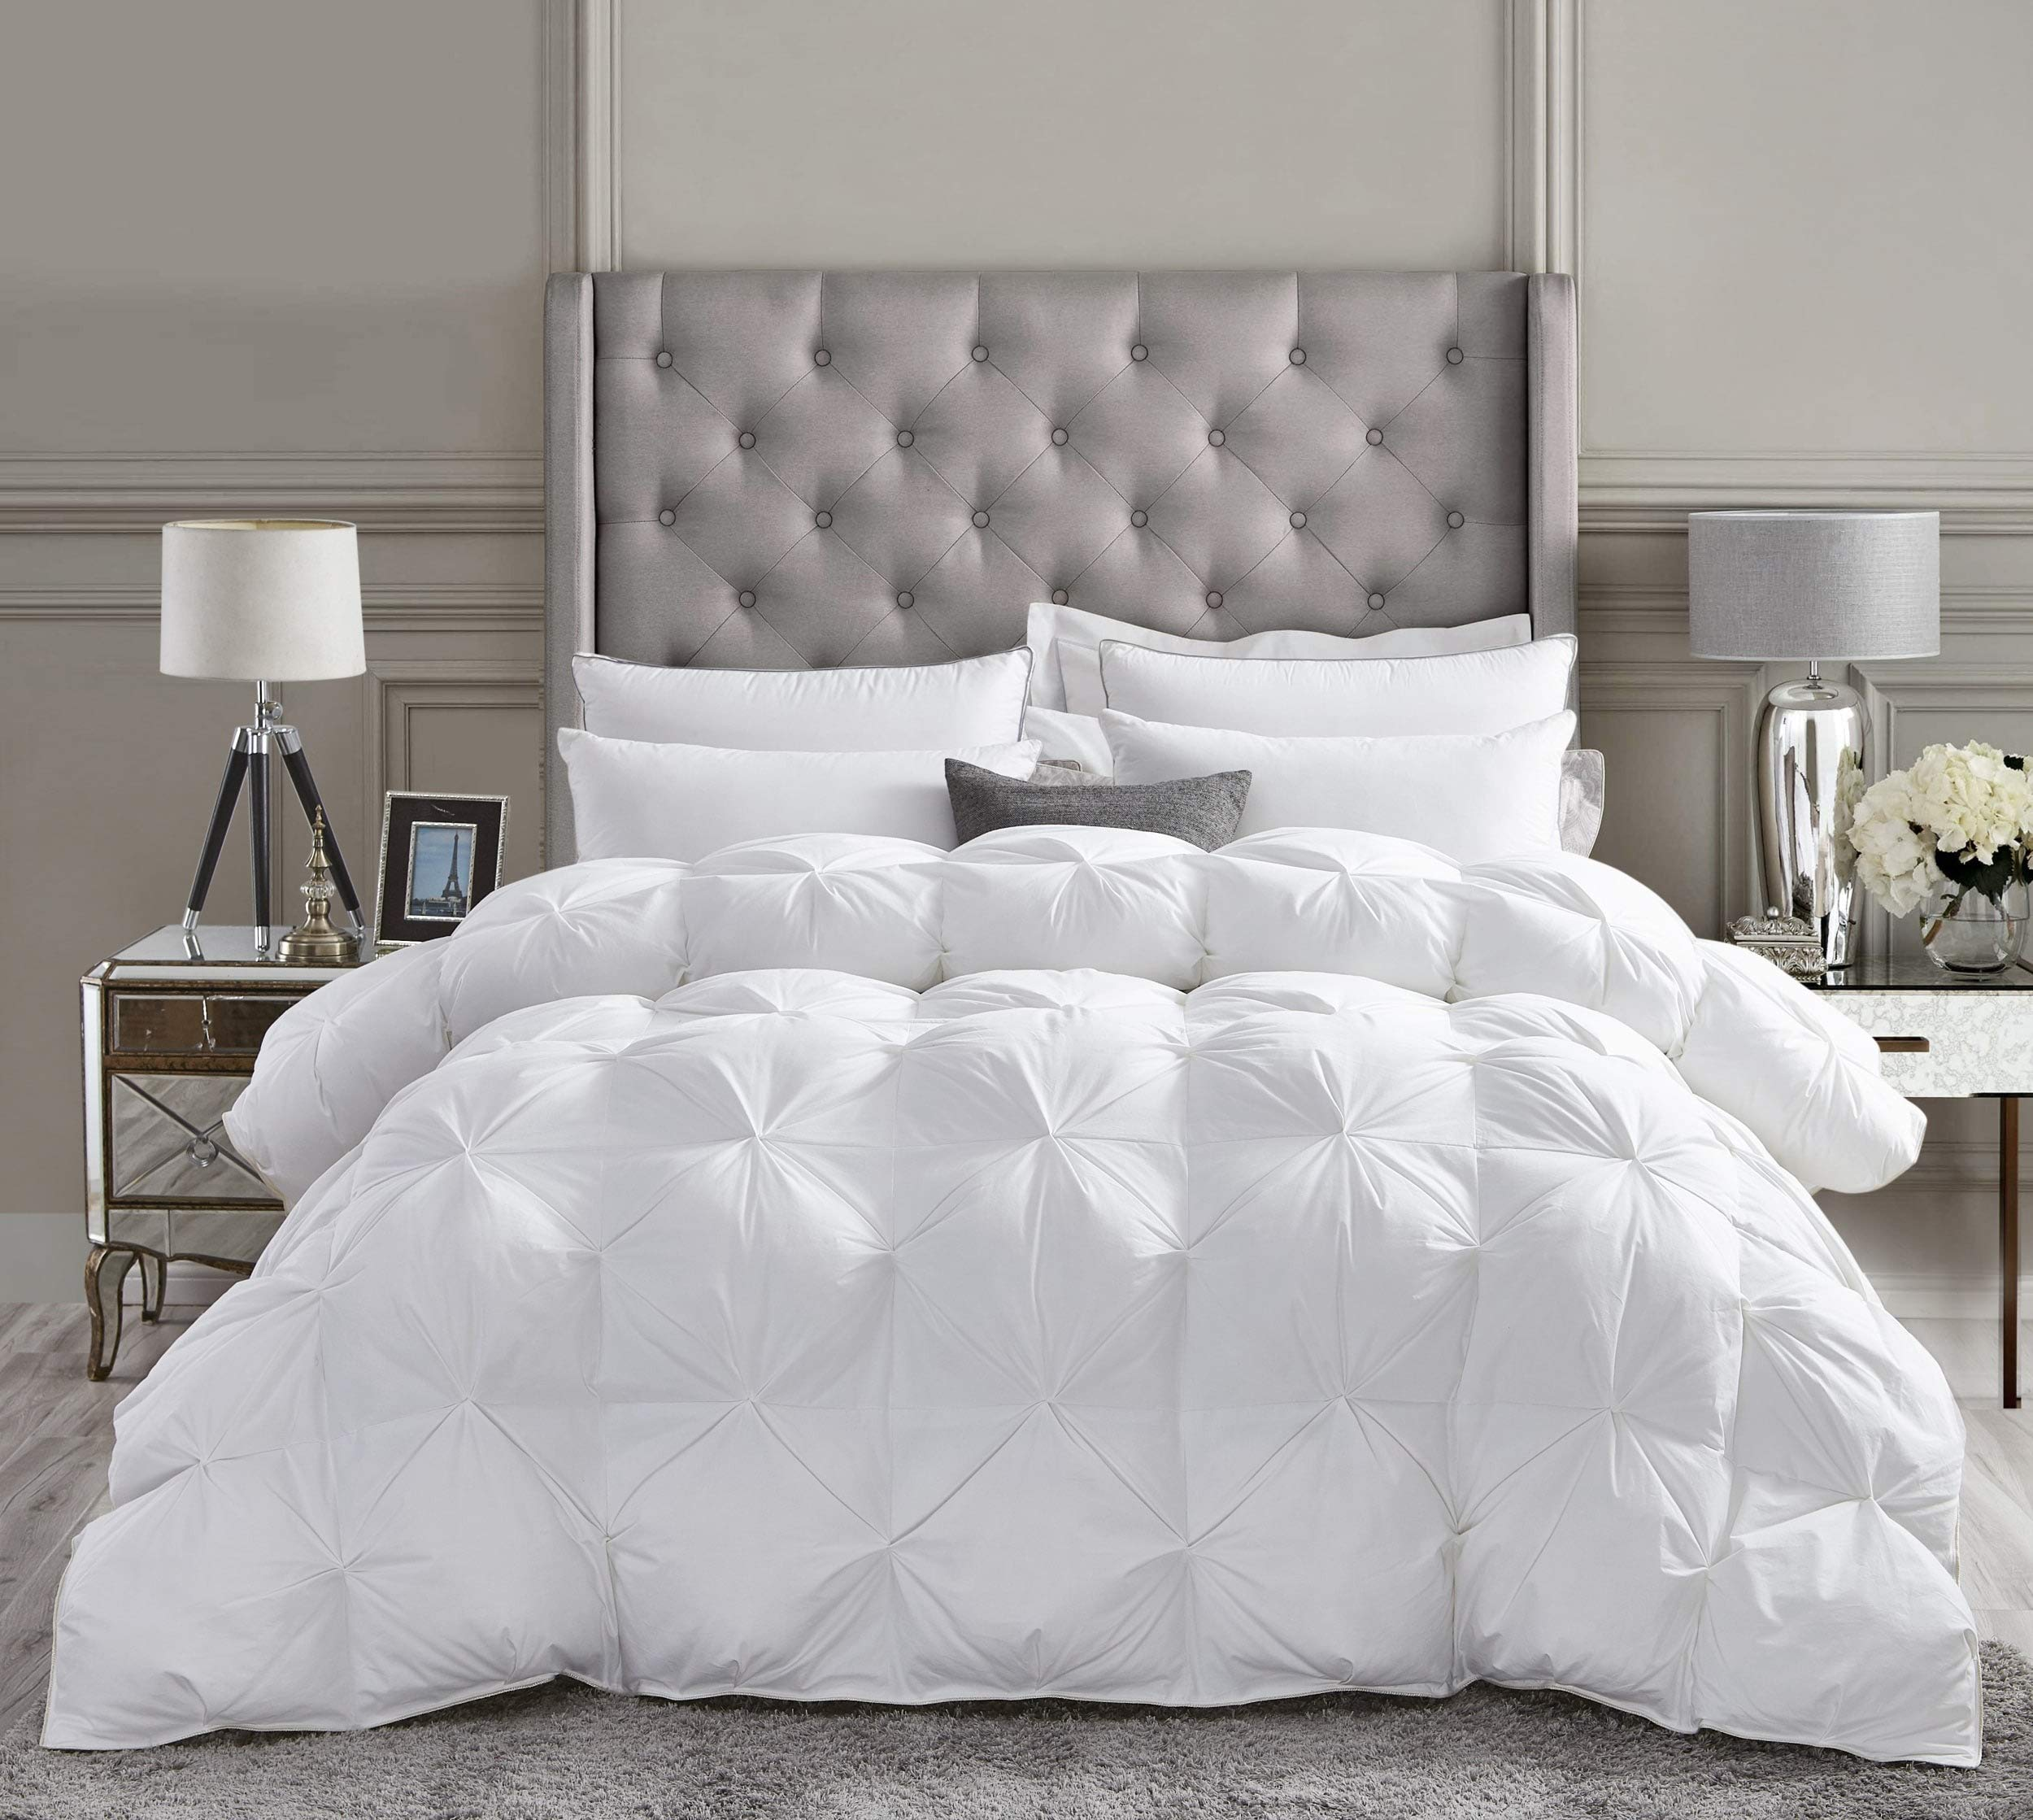 Luxurious All-Season Goose Down Comforter Queen Size Duvet Insert, Exquisite Pinch Pleat Design, Premium Baffle Box, 1200 Thread Count 100% Egyptian Cotton, 750+ Fill Power, 55 oz Fill Weight, White by Egyptian Cotton Factory Outlet Store